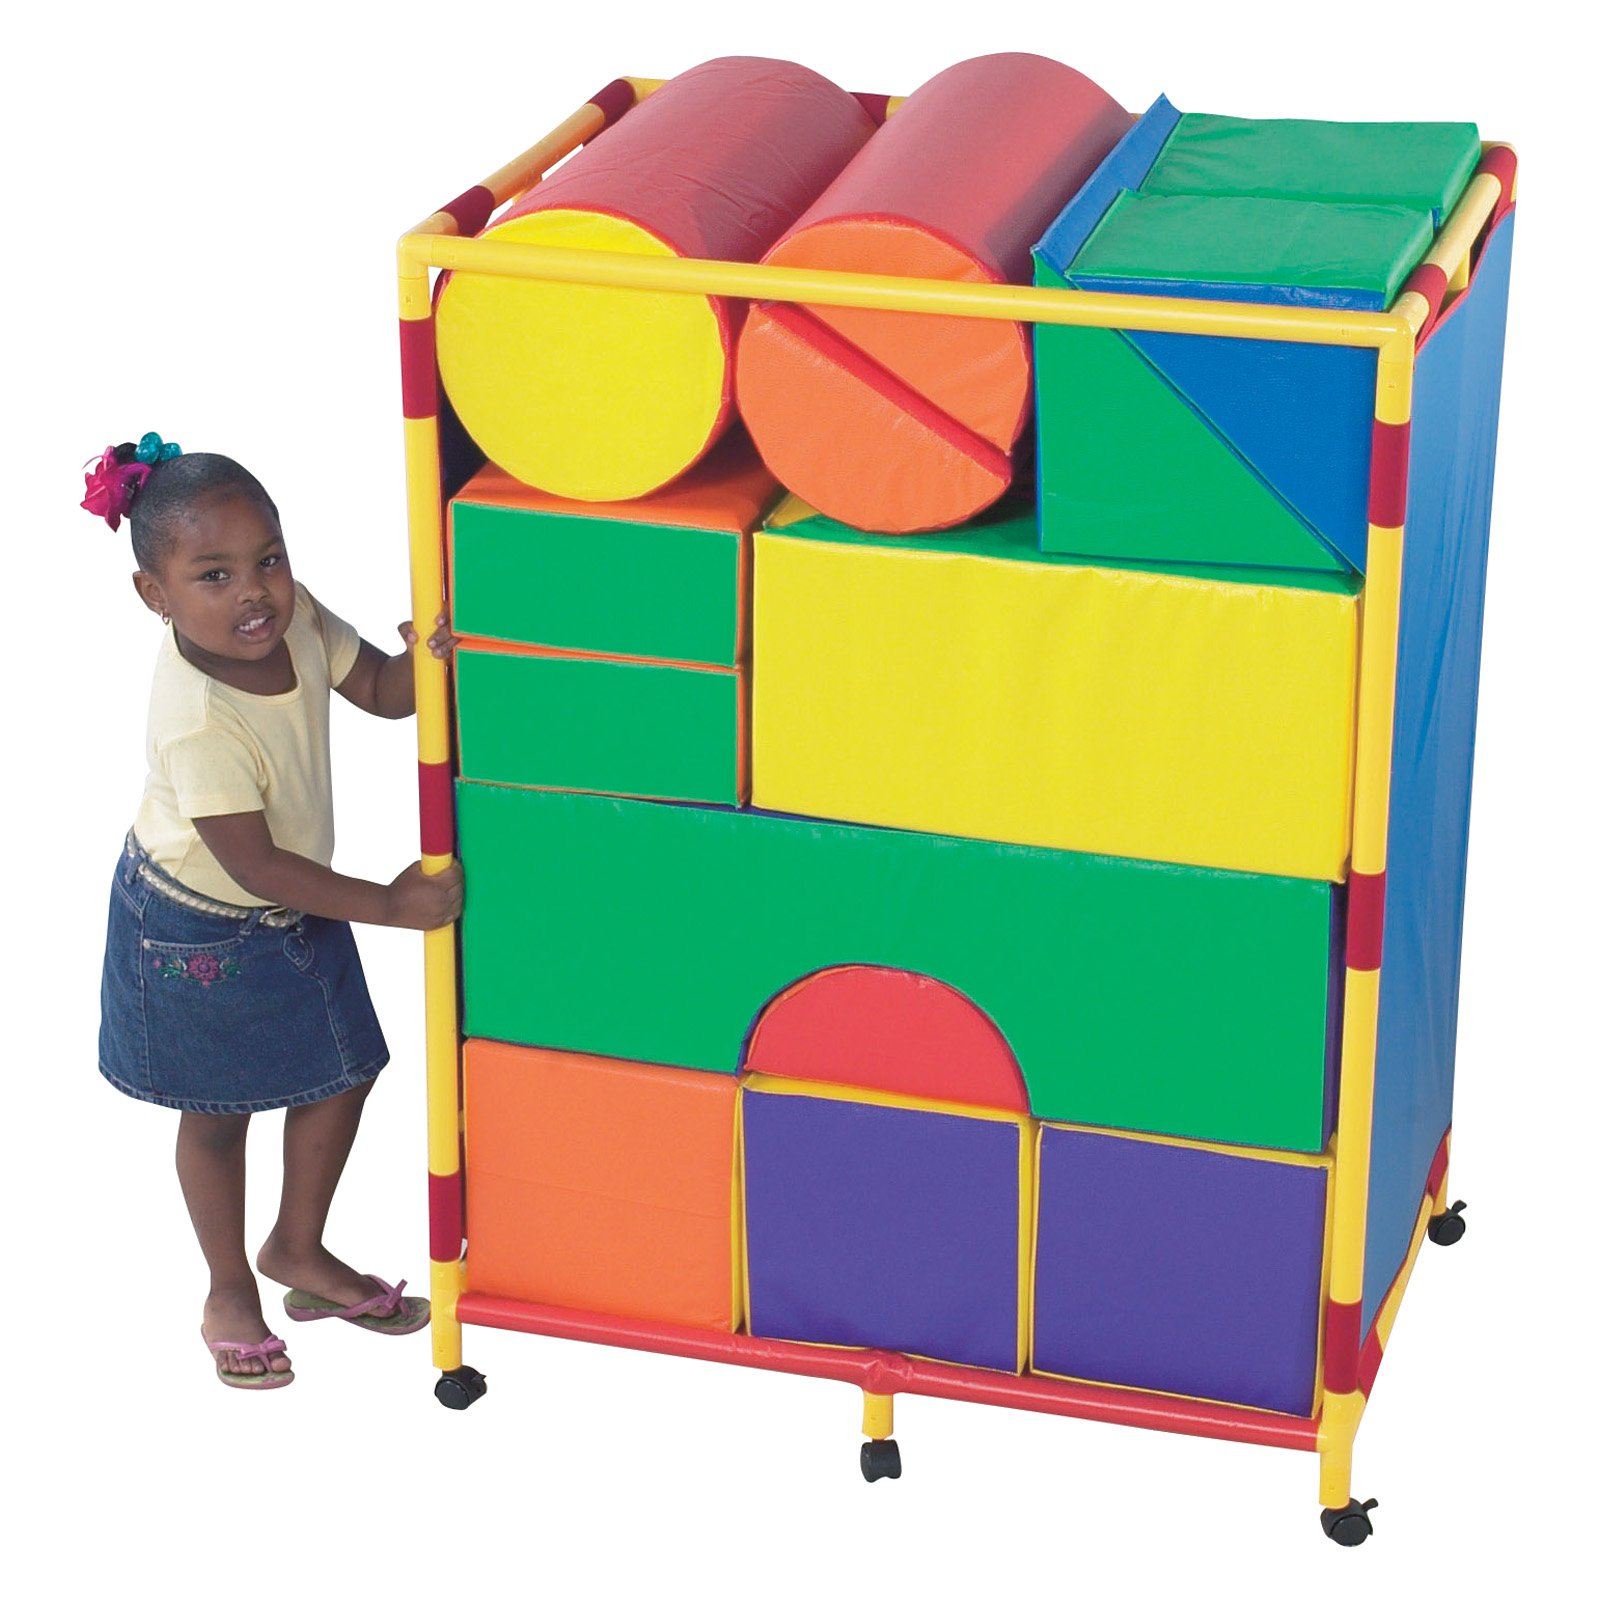 Children's Factory Trolley for 21 Piece Module Soft Play Block Set by Children's Factory